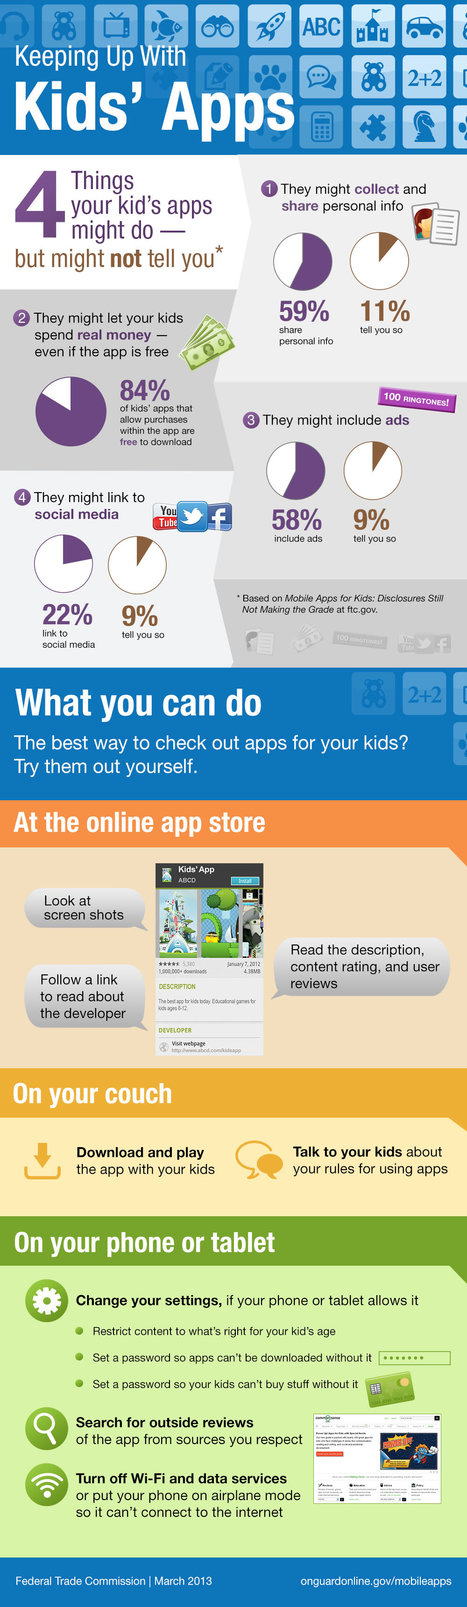 New FTC Graphic Highlights Key Information About Mobile Apps for Kids | Must Read articles: Apps and eBooks for kids | Scoop.it